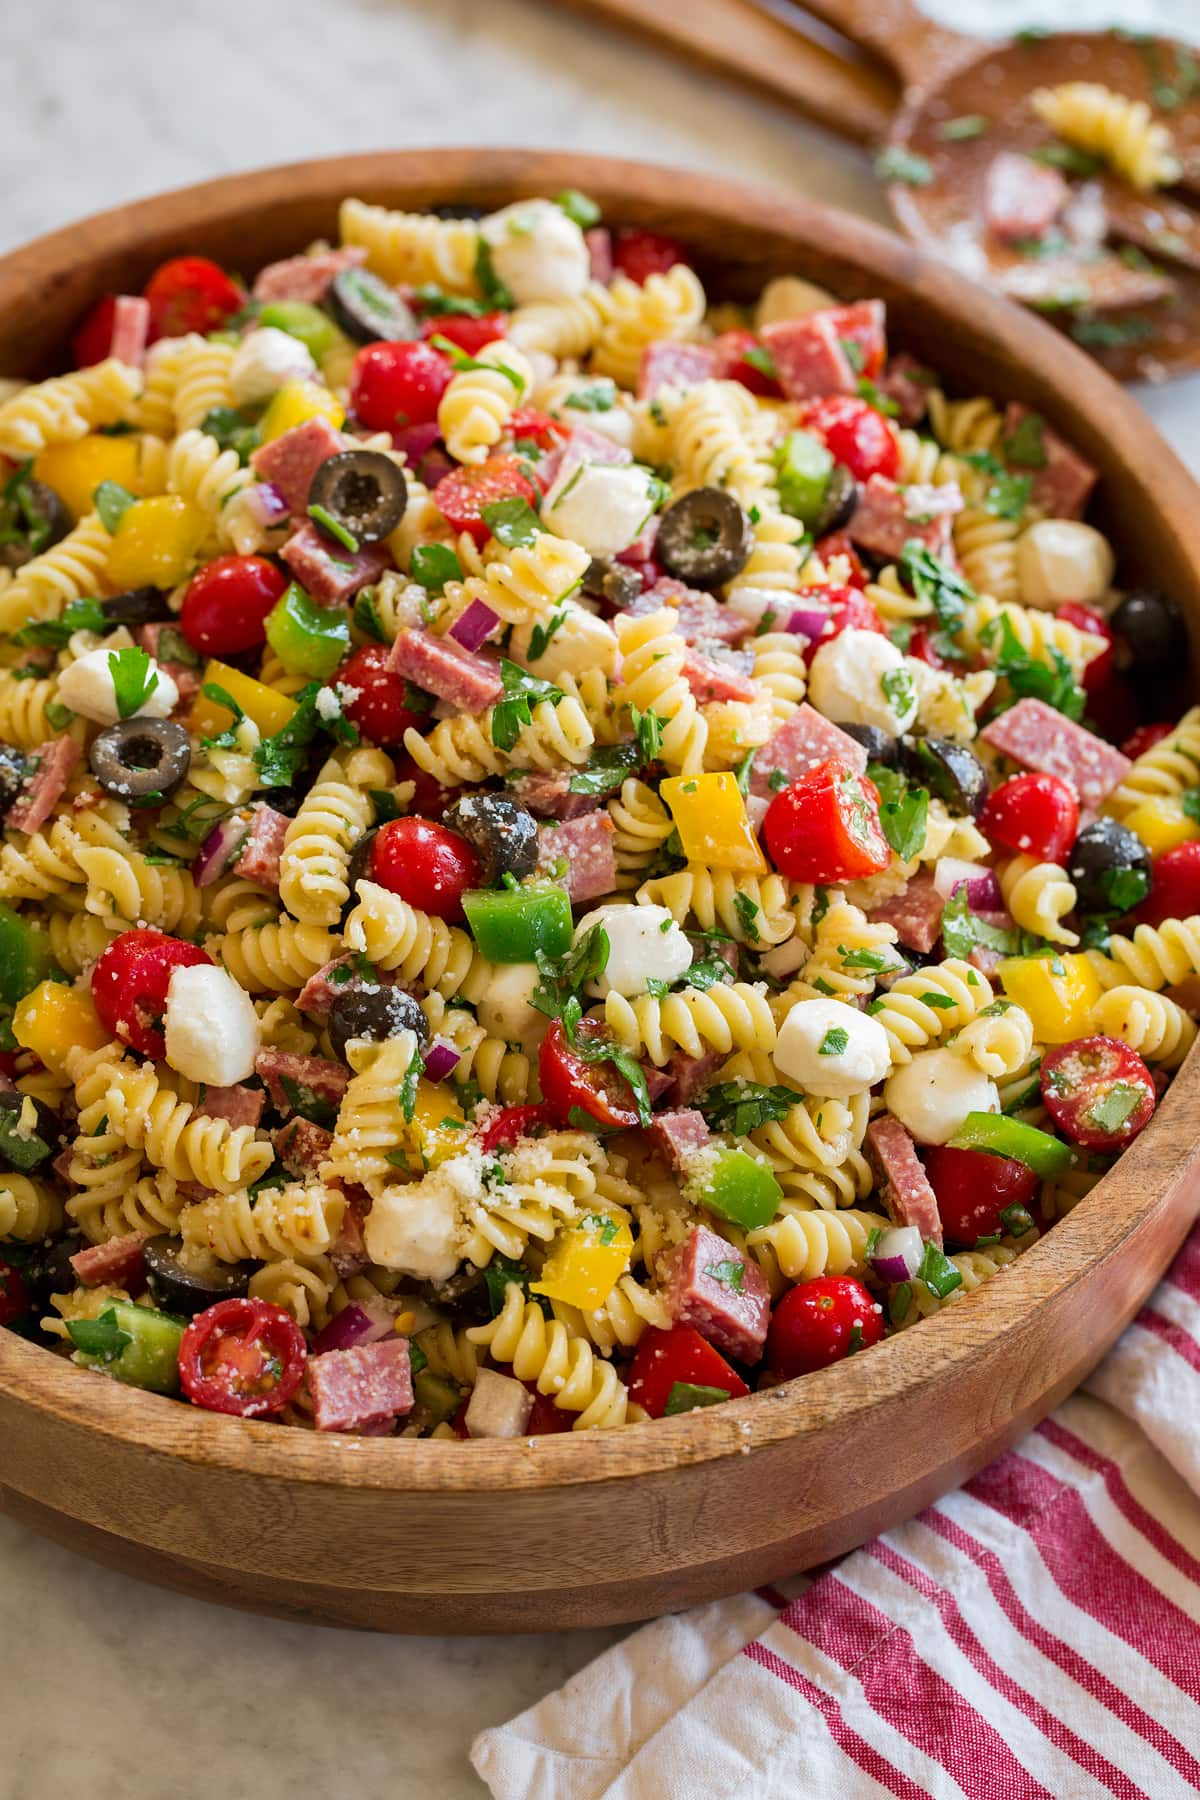 Italian pasta salad shown from a side angle on a large wooden bowl.